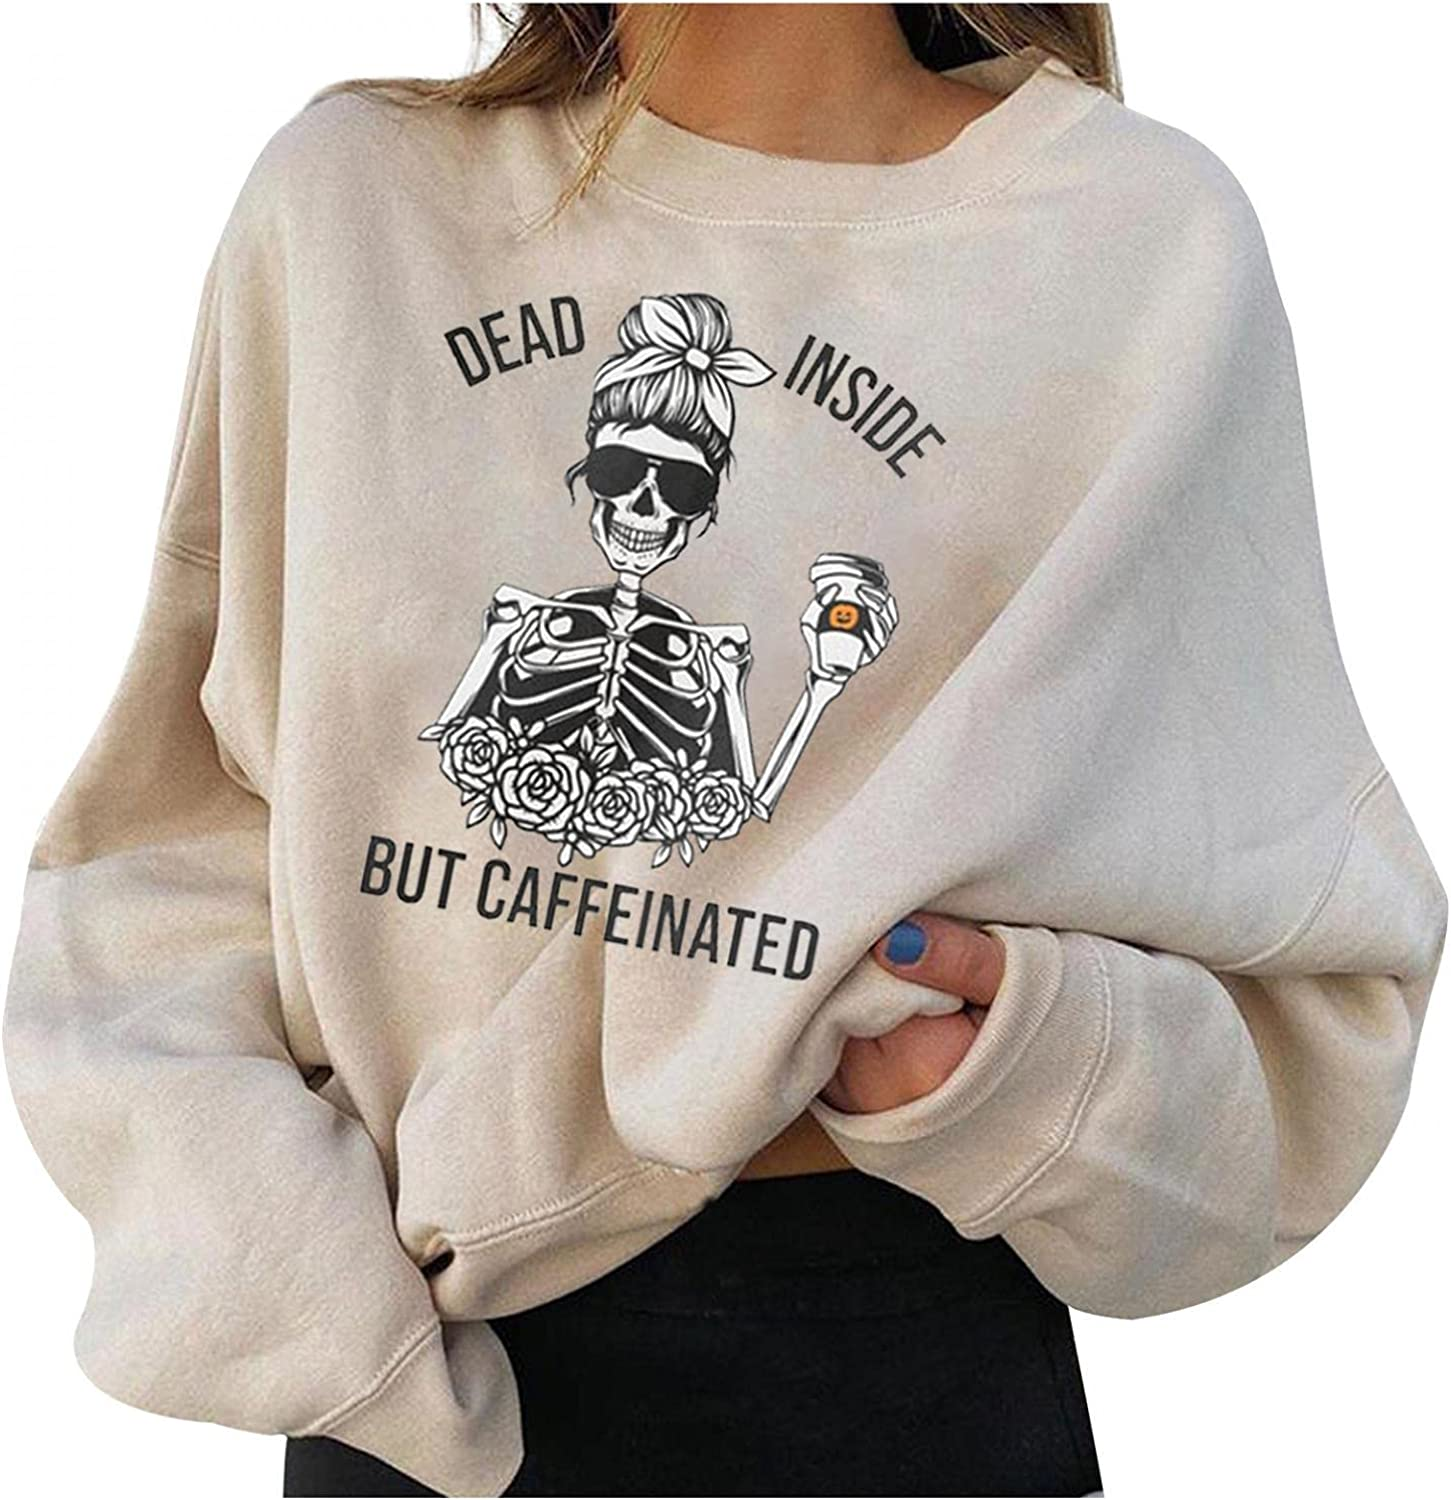 Oiumov Halloween Sweatshirts for Women Long Sleeve Crewneck Funny Skeleton Pullover Tops Casual Graphic Shirts Blouse